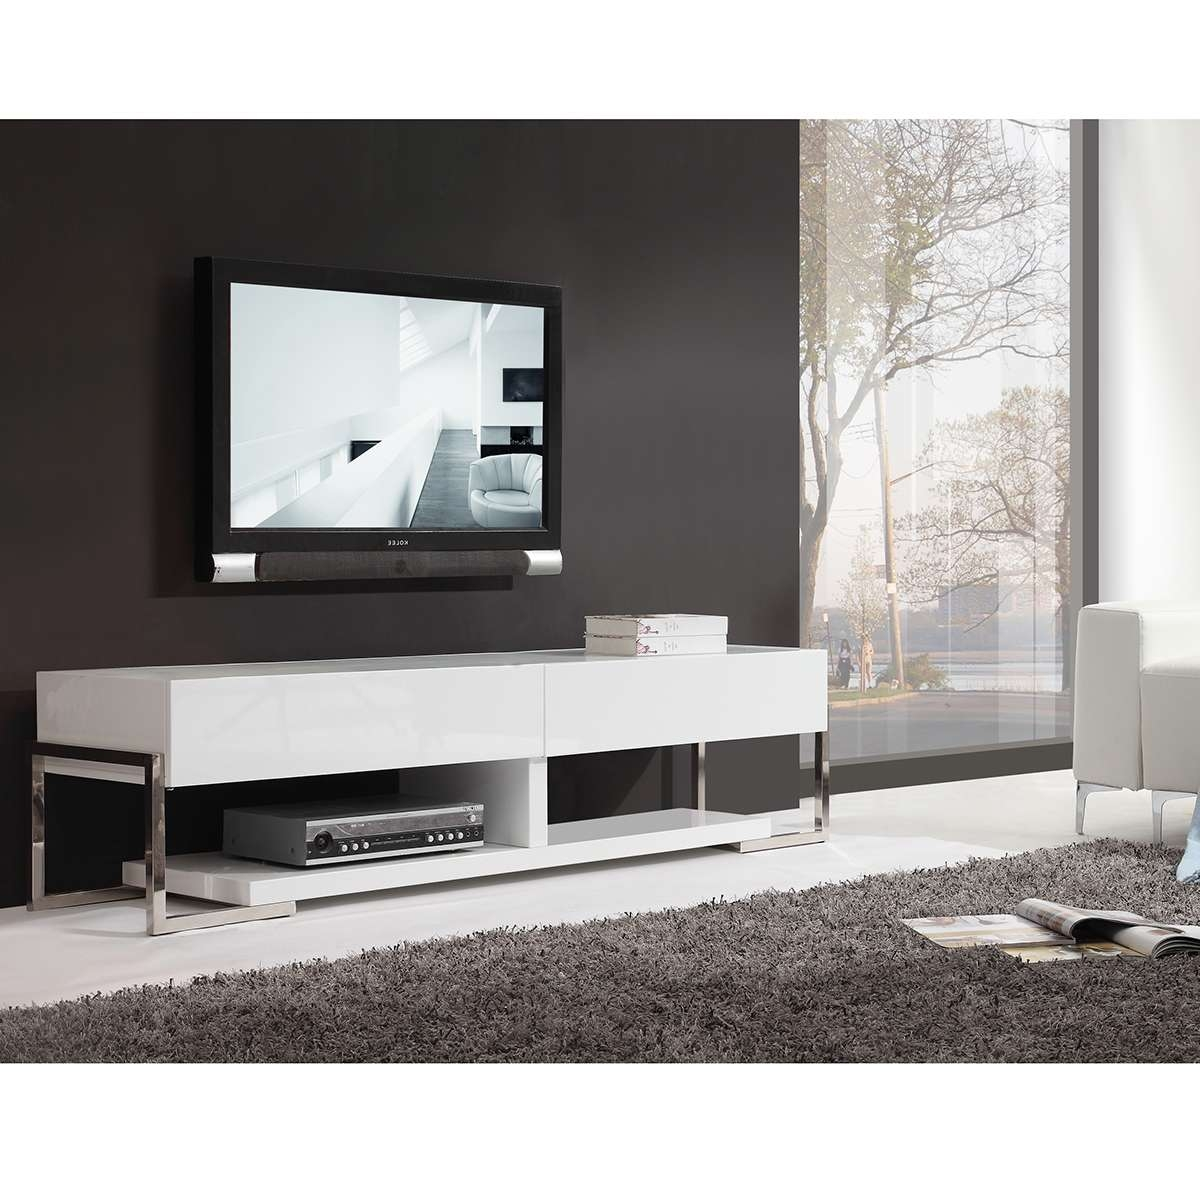 "B Modern Bm 650 Awht Agent 71"" Contemporary Tv Stand In White With Regard To Modern White Lacquer Tv Stands (View 2 of 15)"